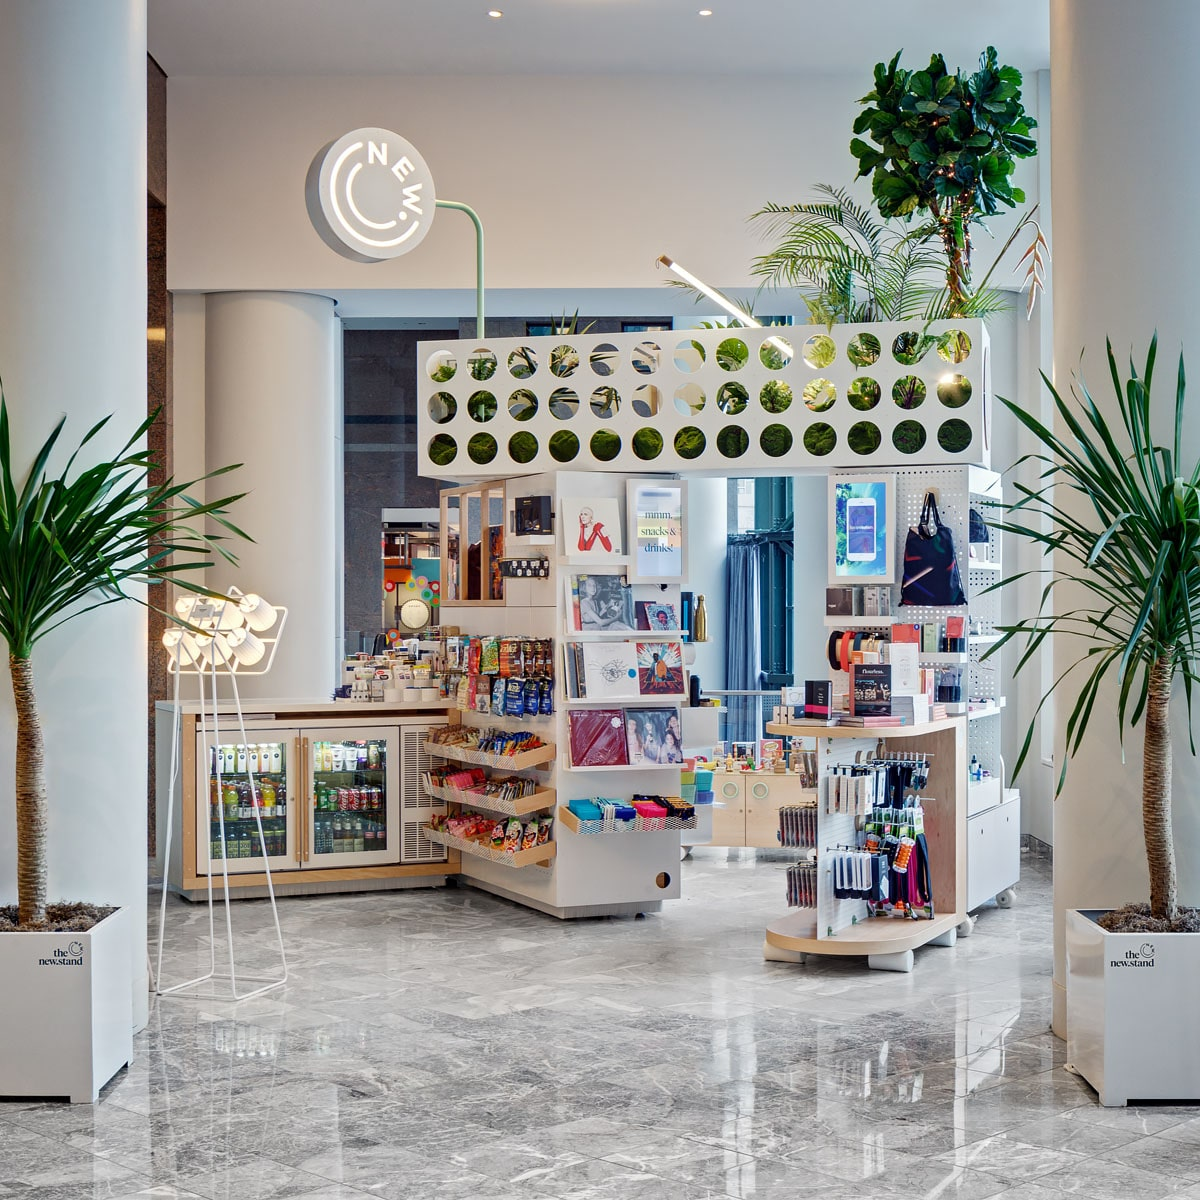 Convene partners with New Stand, will bring retail into its flex spaces